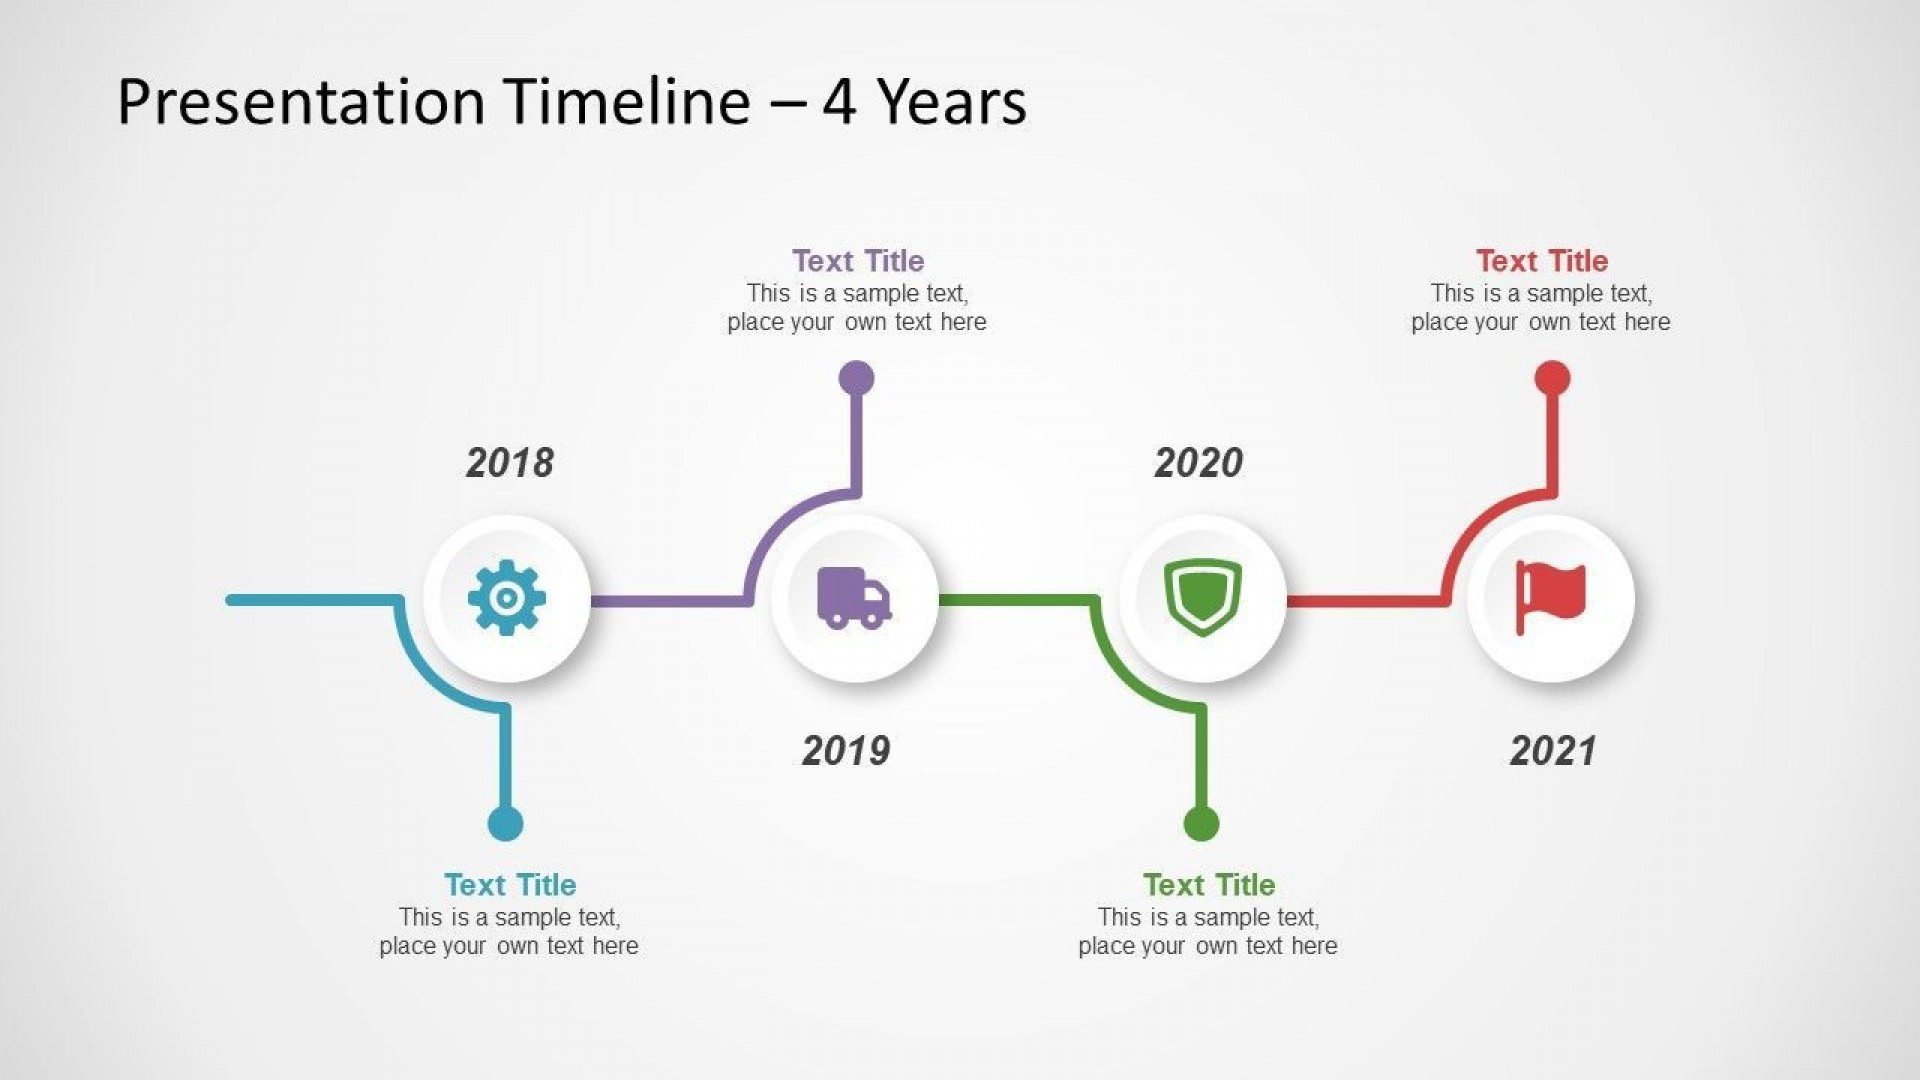 001 Exceptional Timeline Template Ppt Free Download Image  Infographic Powerpoint Project1920